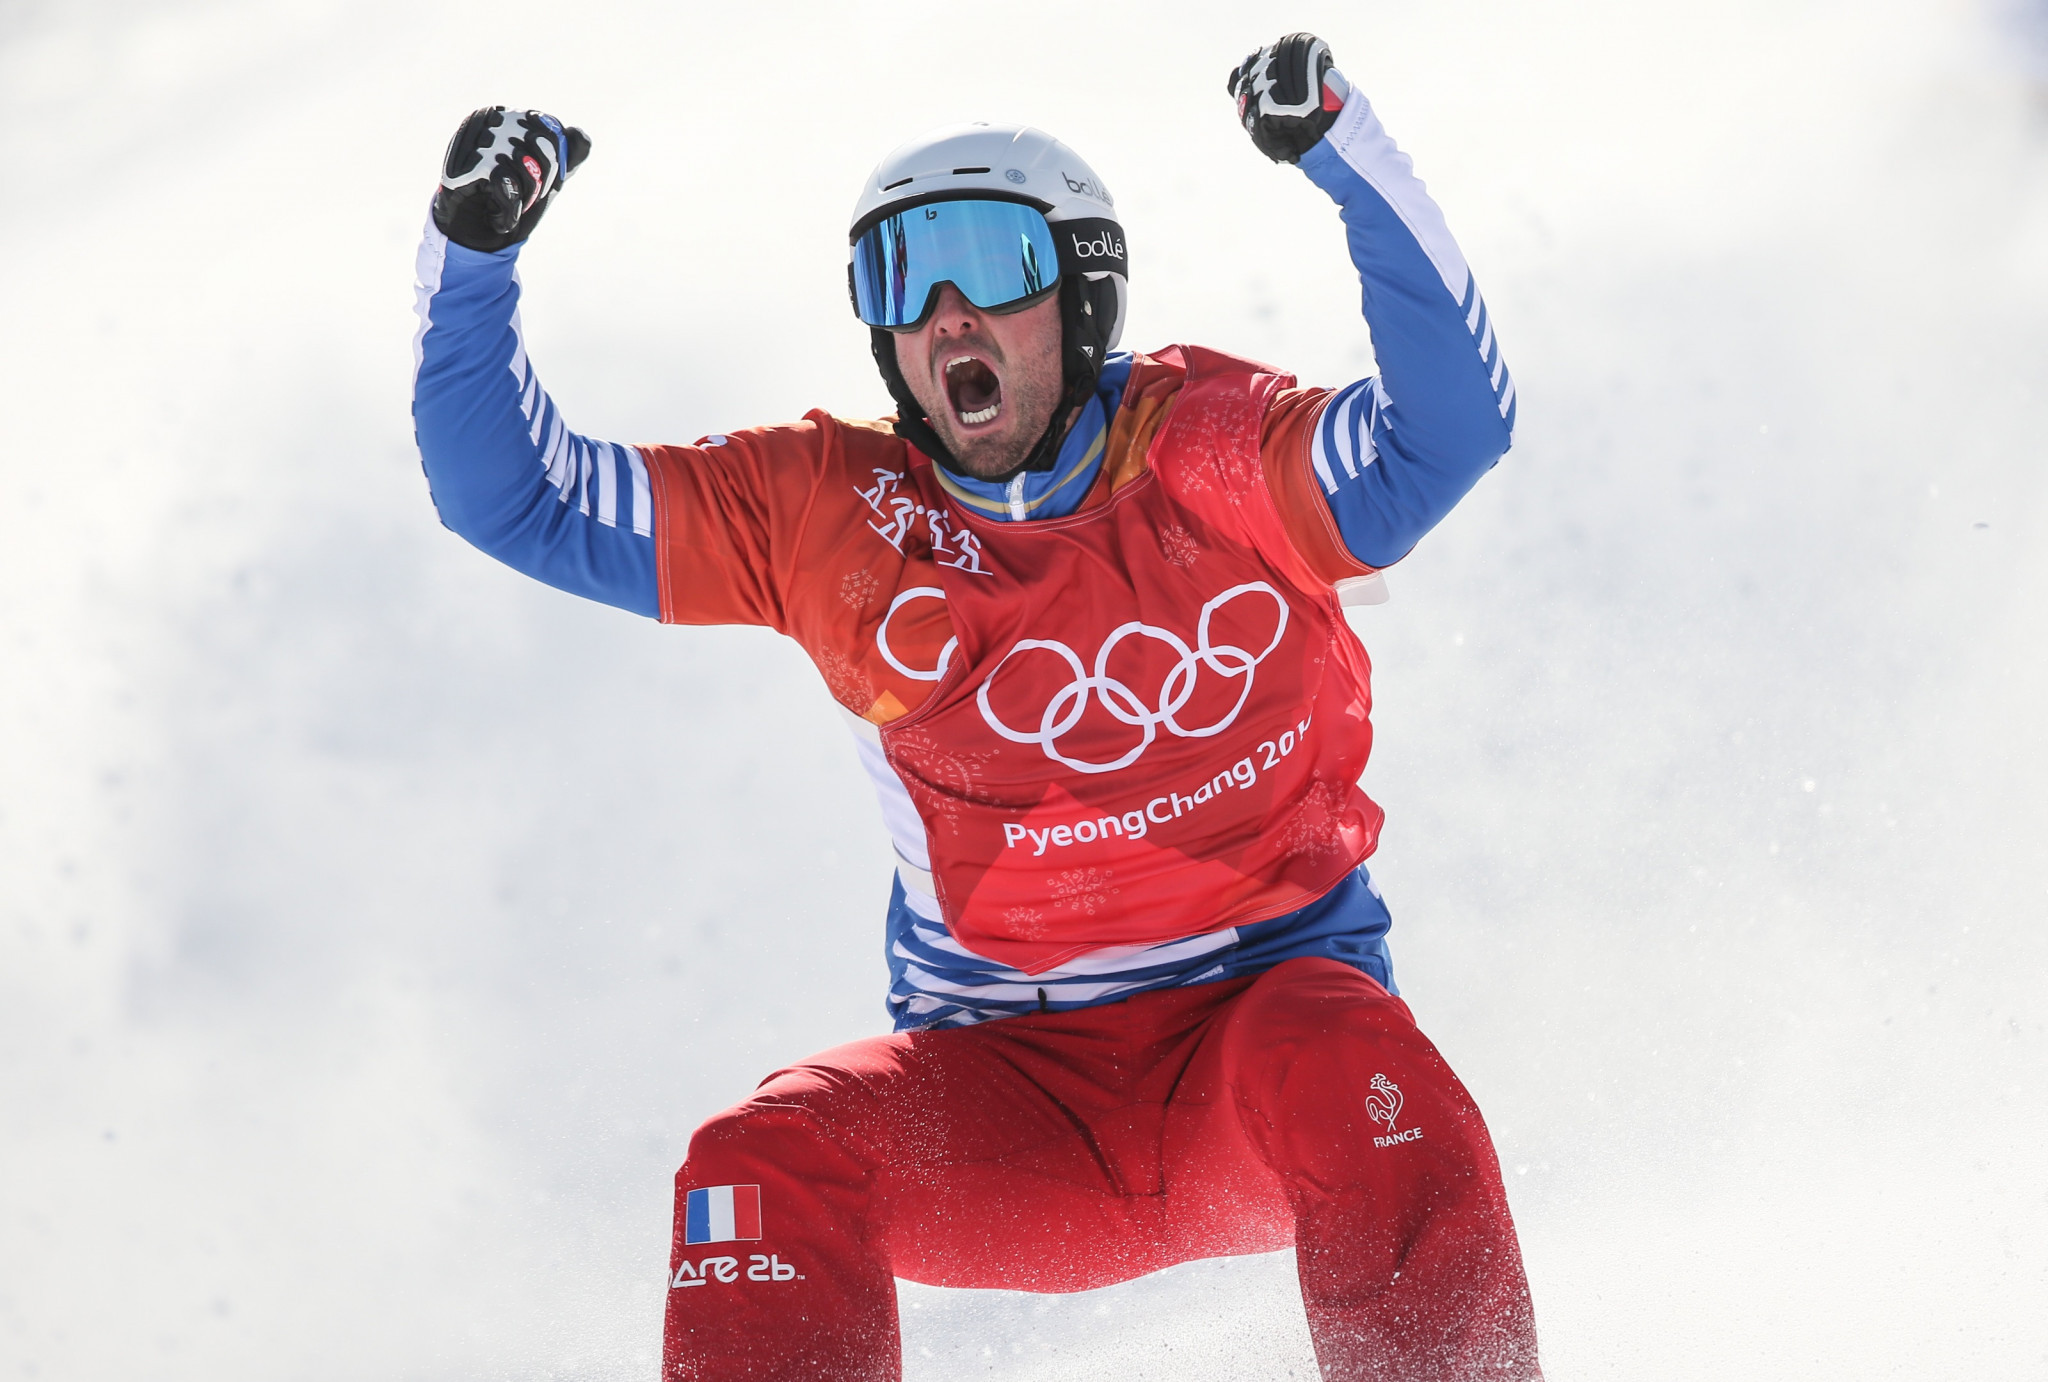 France's Pierre Vaultier successfully defended his men's snowboard cross Olympic title after coming out on top on a challenging day at Pyeongchang 2018 ©Getty Images